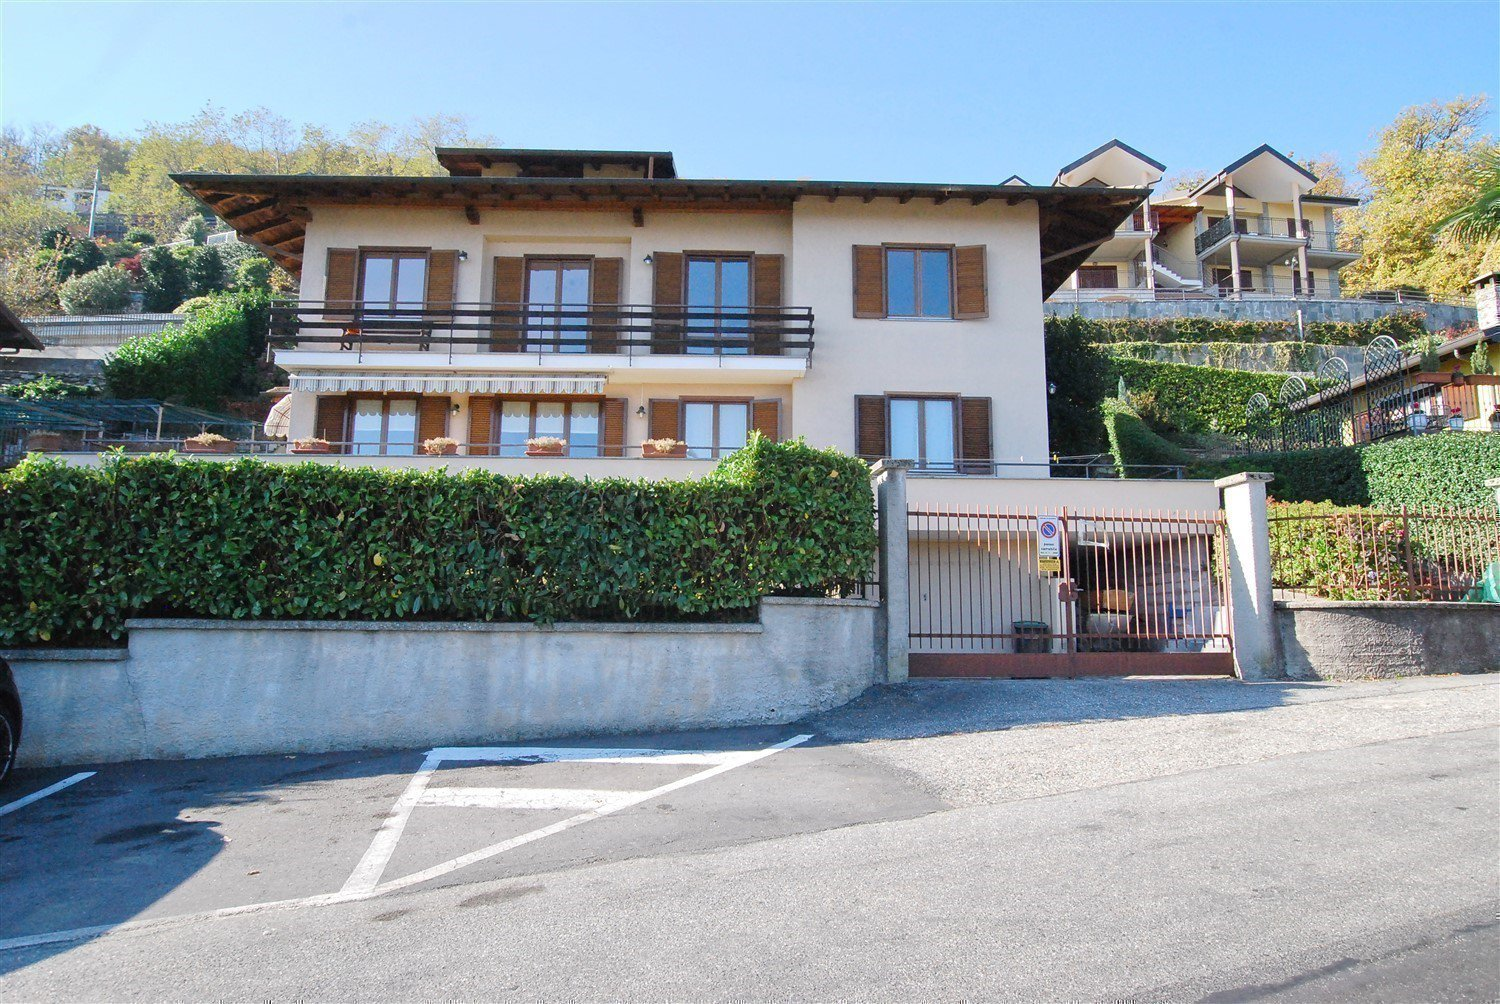 Apartment for sale in Belgirate - facade